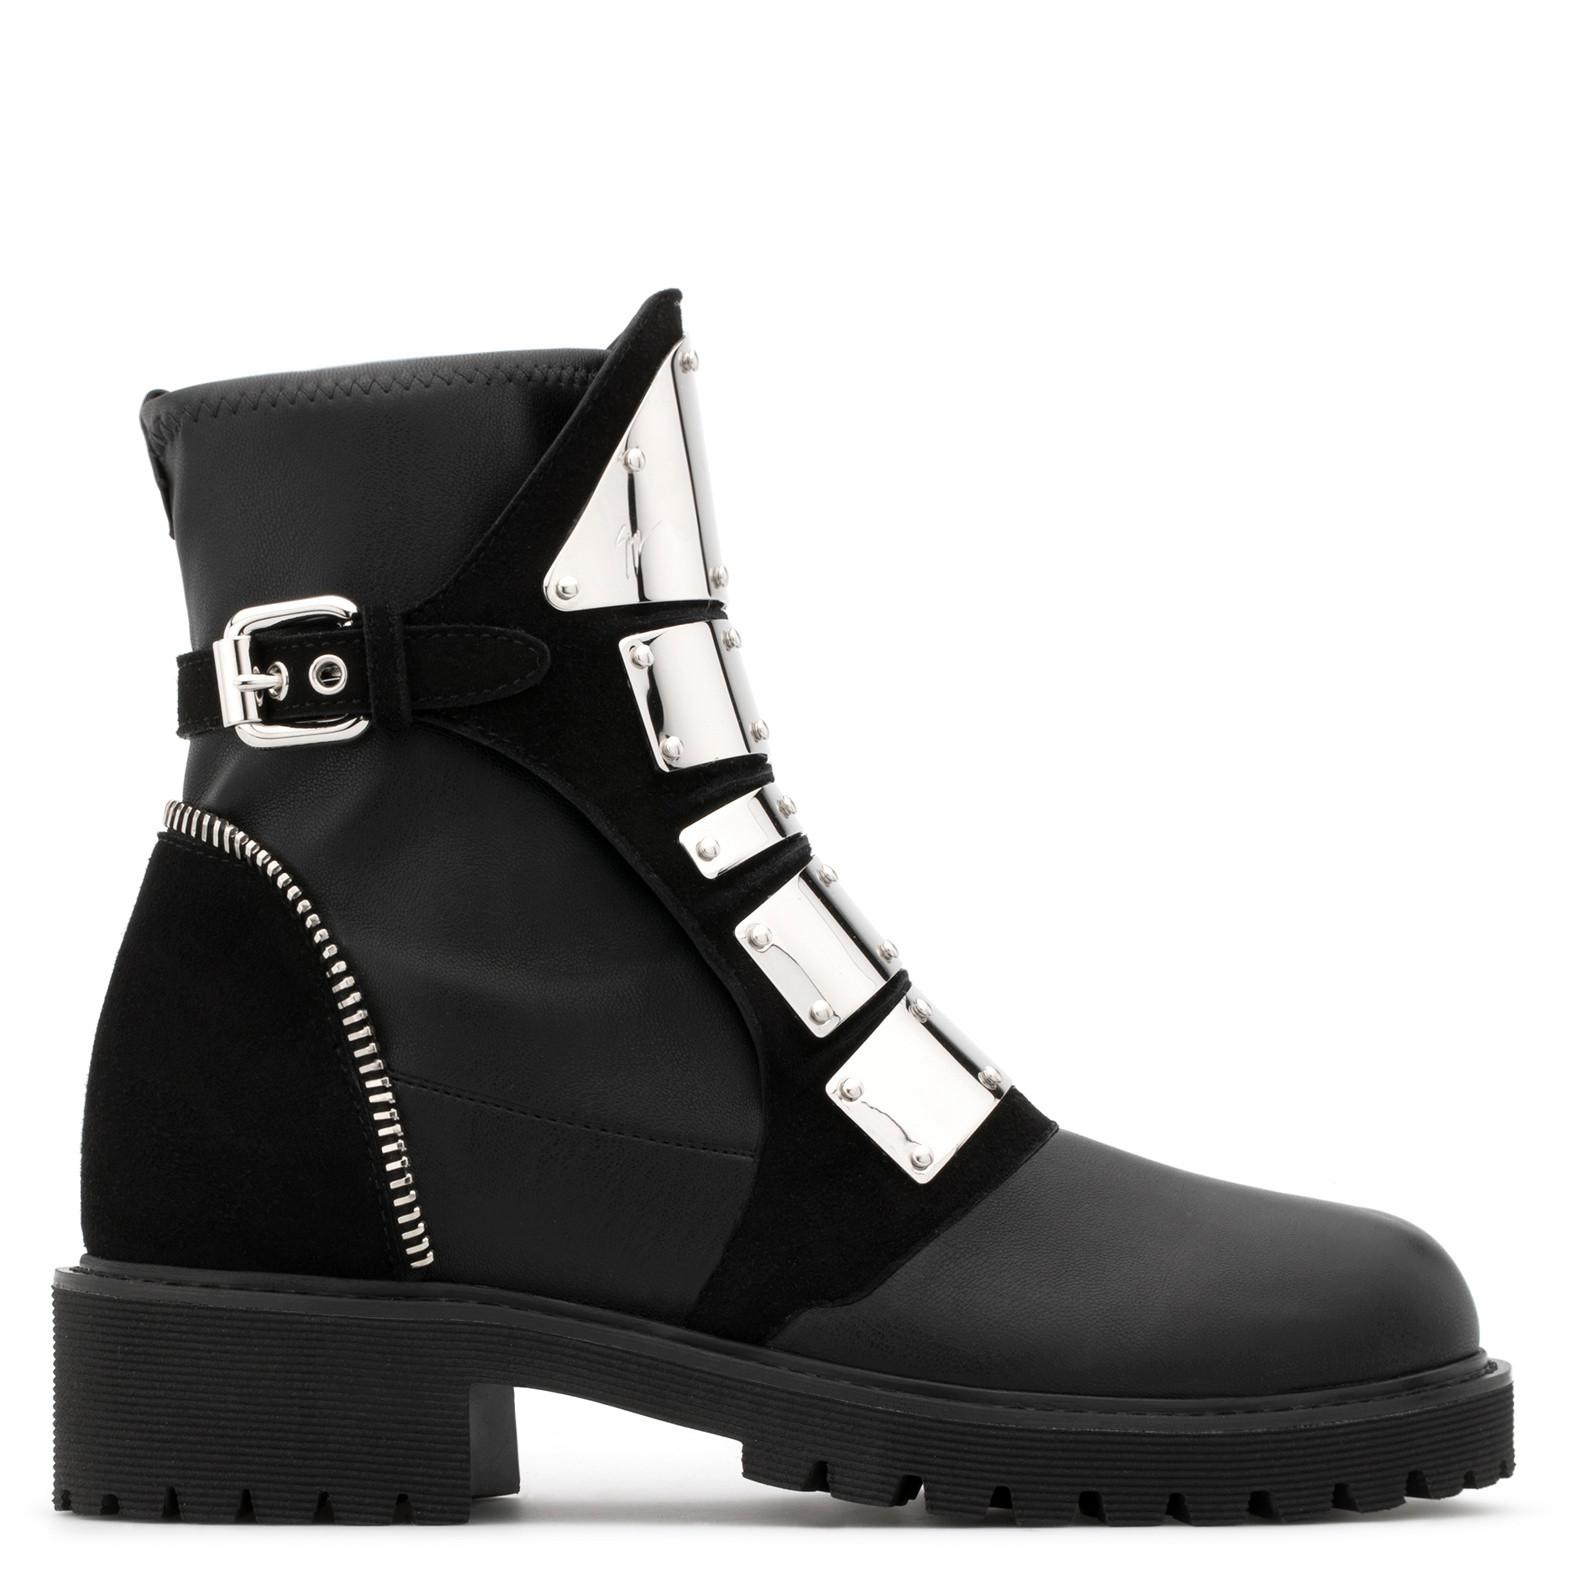 Giuseppe ZanottiStretch leather boot with metal bars REGAN